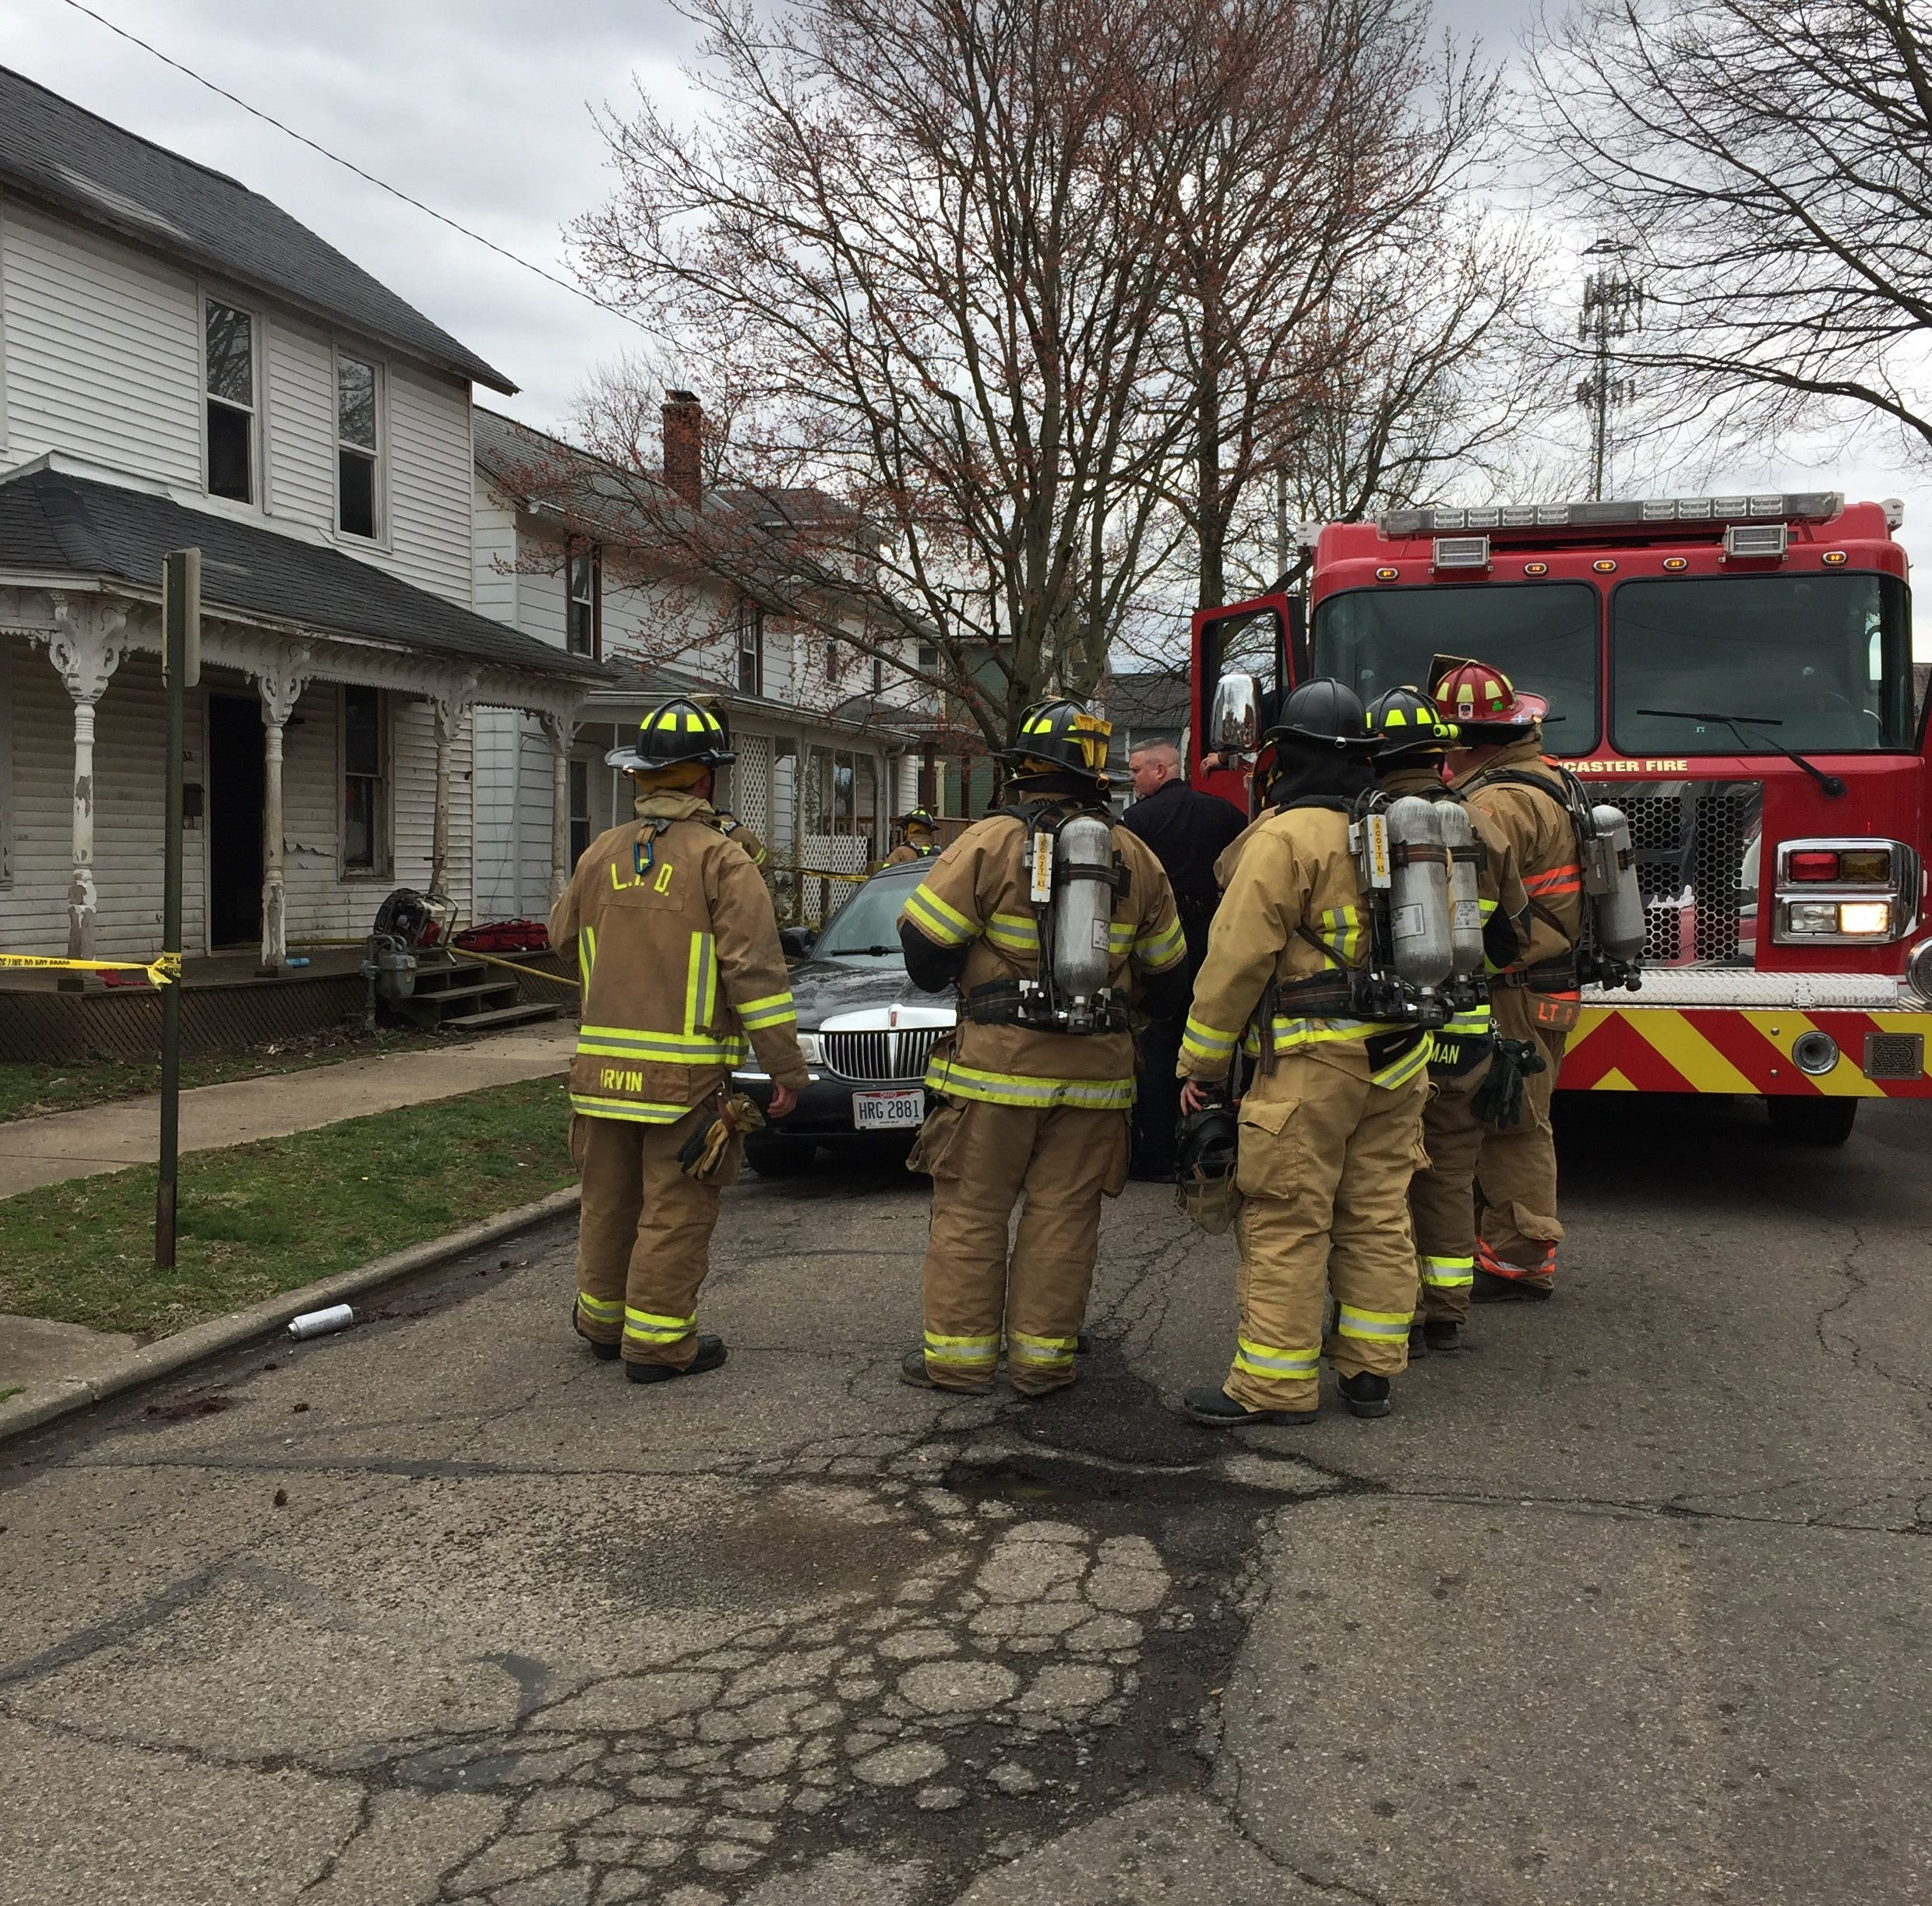 City fire responds to 2nd fire in 2 hours, no injuries